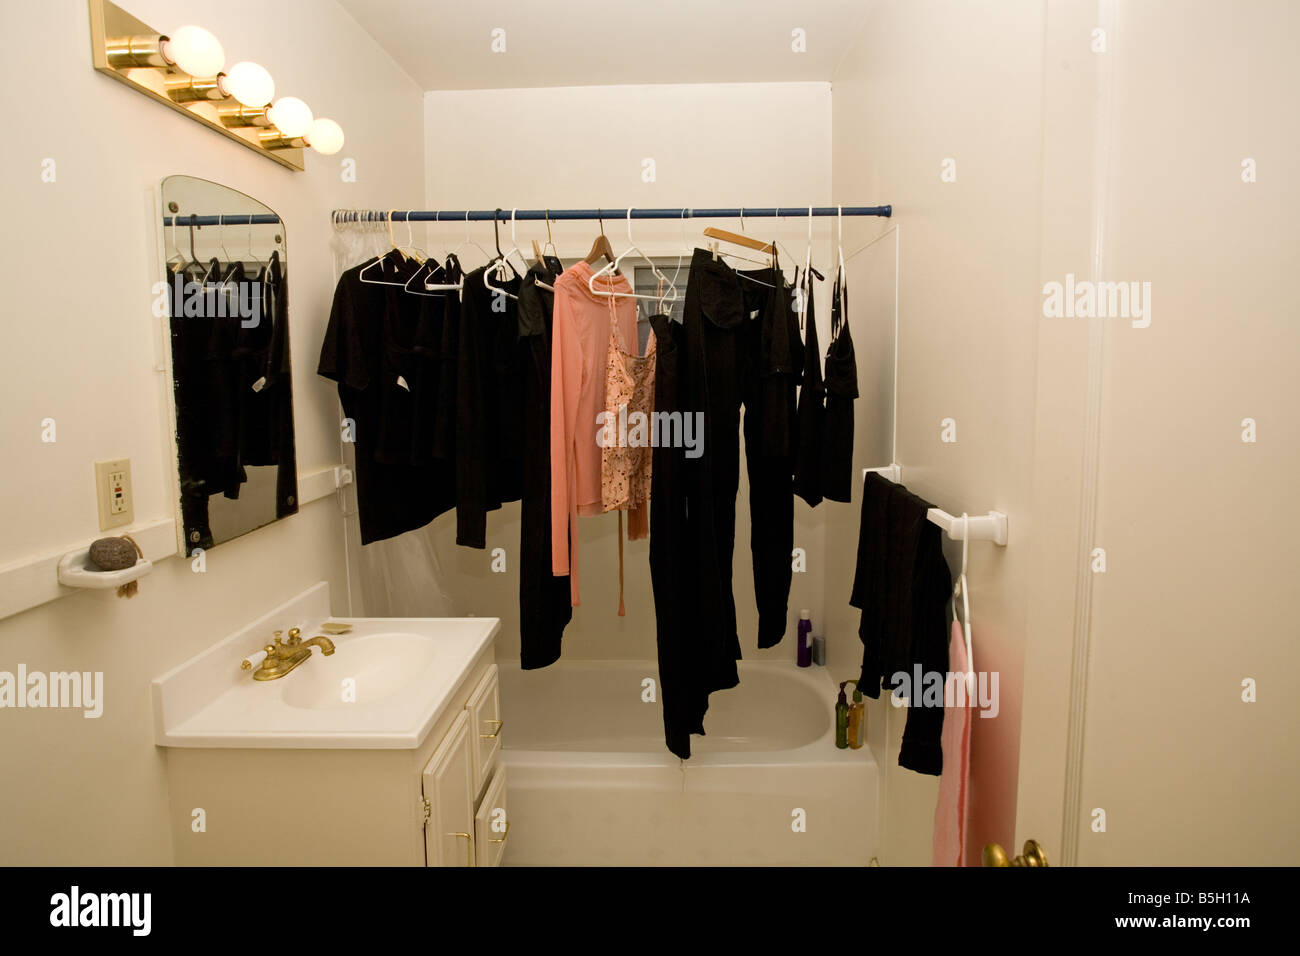 Clothes Hanging To Dry In Bathroom Stock Photo 20657654 Alamy